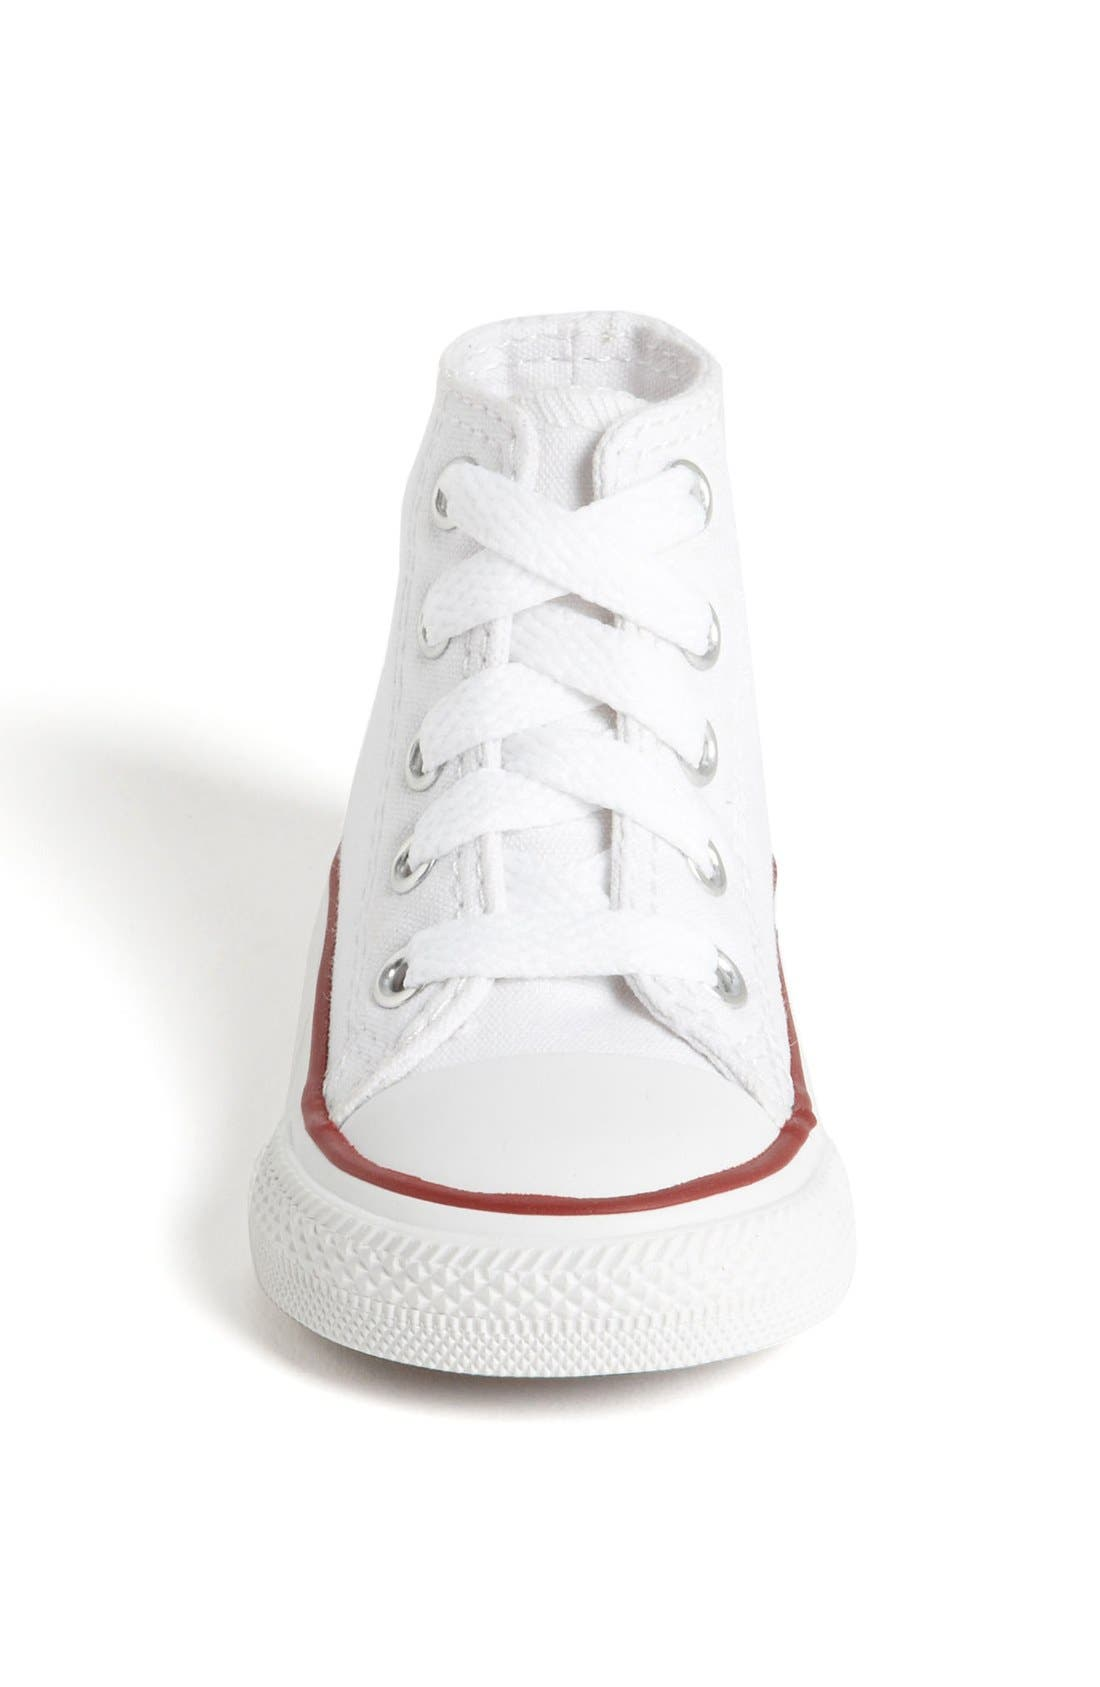 All Star<sup>®</sup> High Top Sneaker,                             Alternate thumbnail 3, color,                             OPTIC WHITE